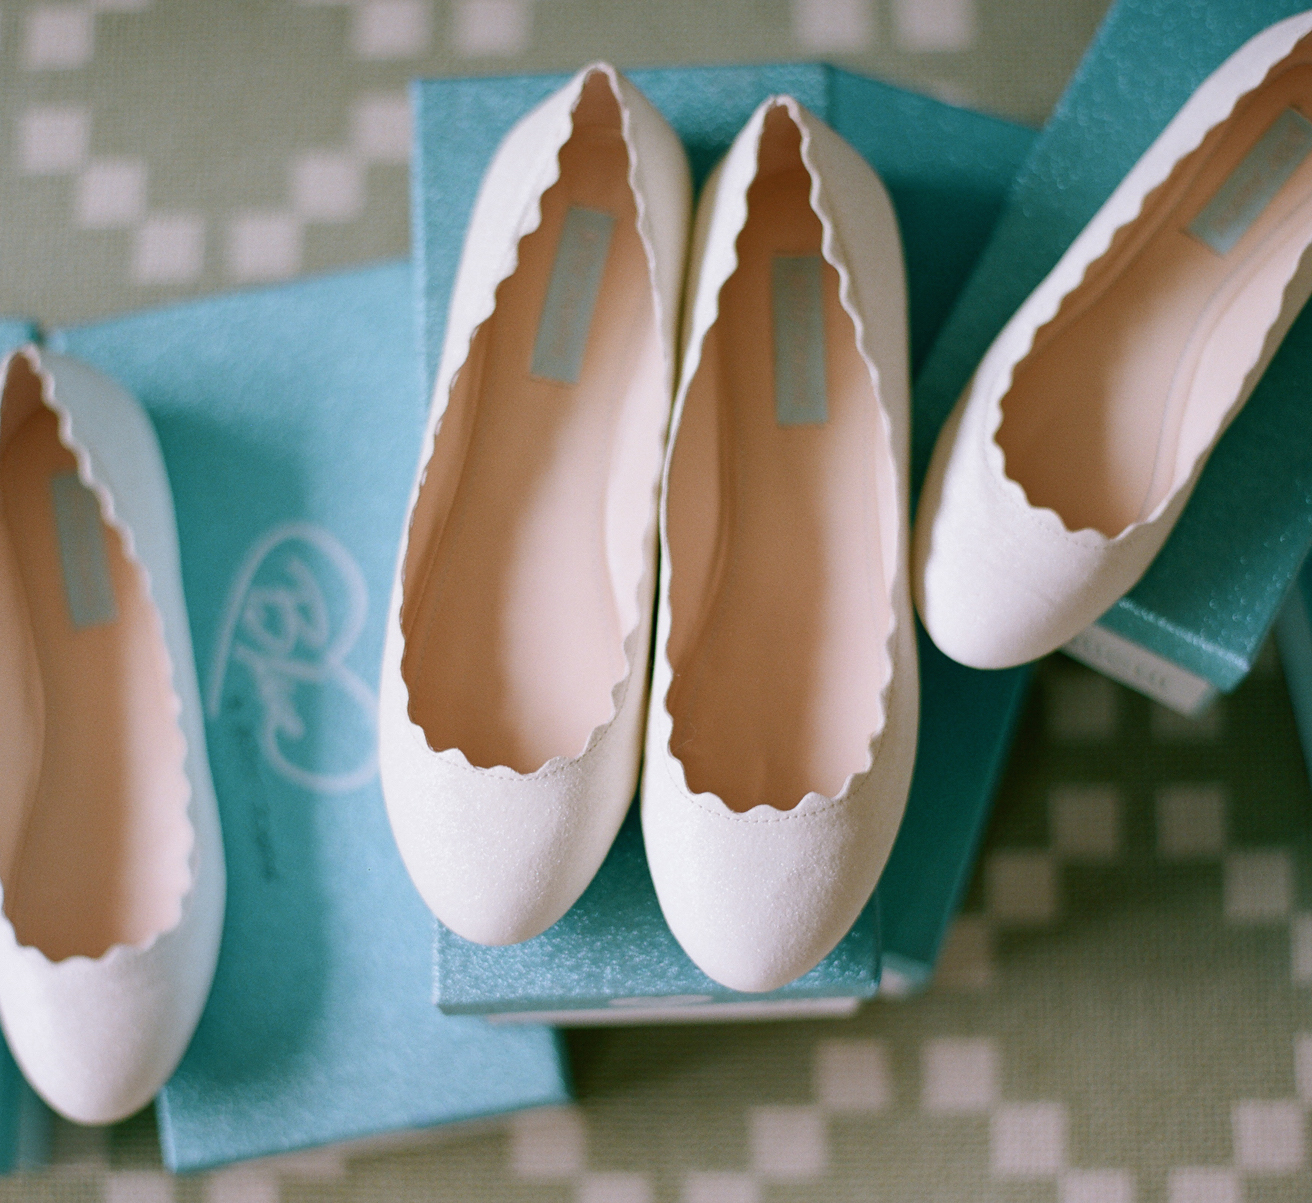 Bridesmaid gifts flats in blue boxes